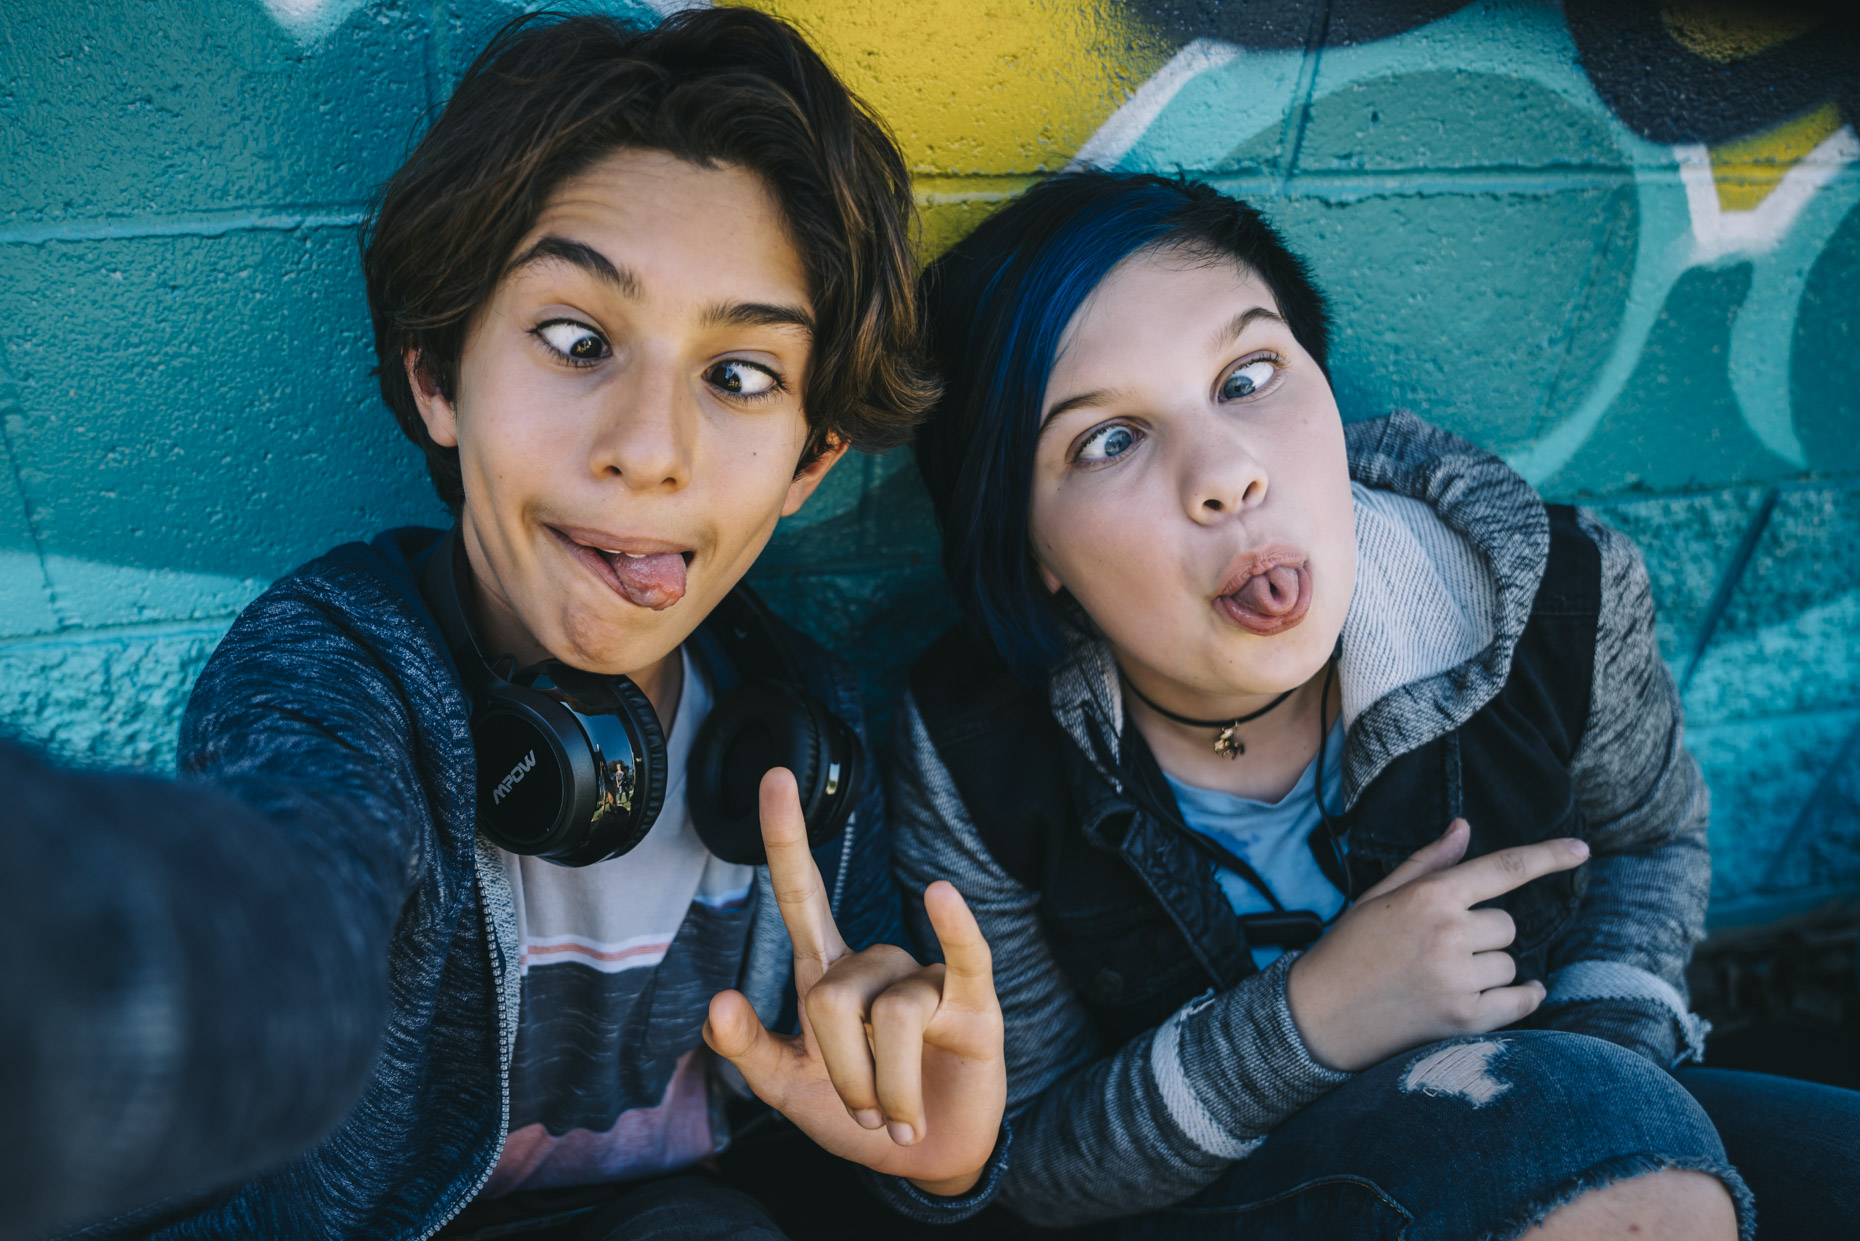 Teens-making-goofy-faces-taking-selfie-Inti-St-Clair-17OCT_11699